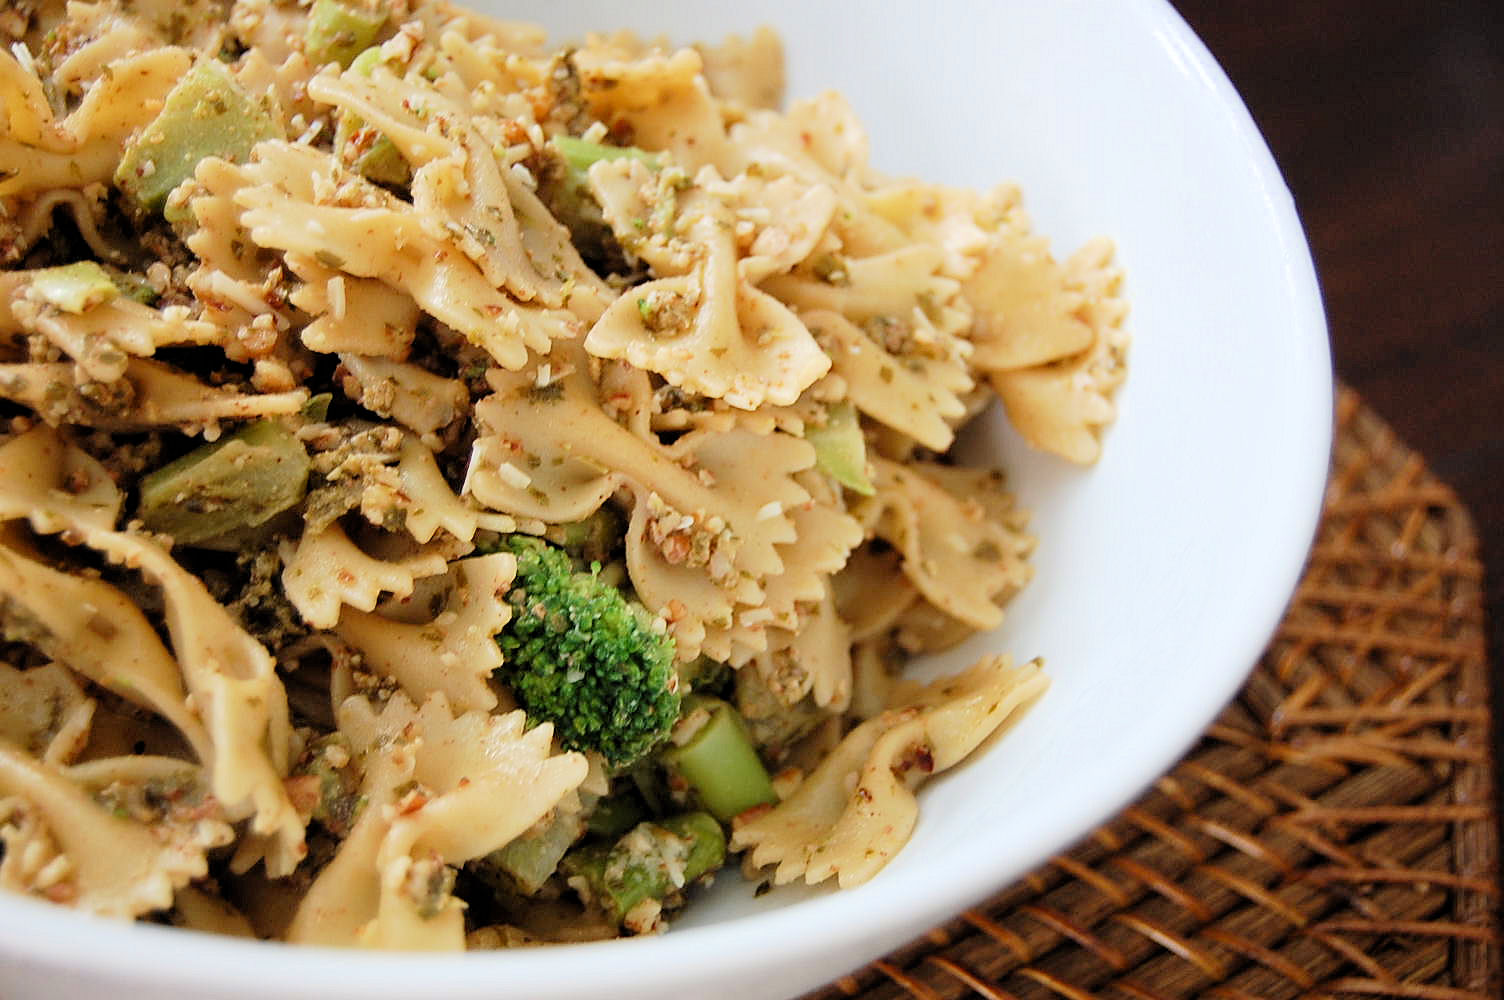 sage-and-pecan-pesto-with-roasted-brocolli-tossed-with-pecan-crumbs